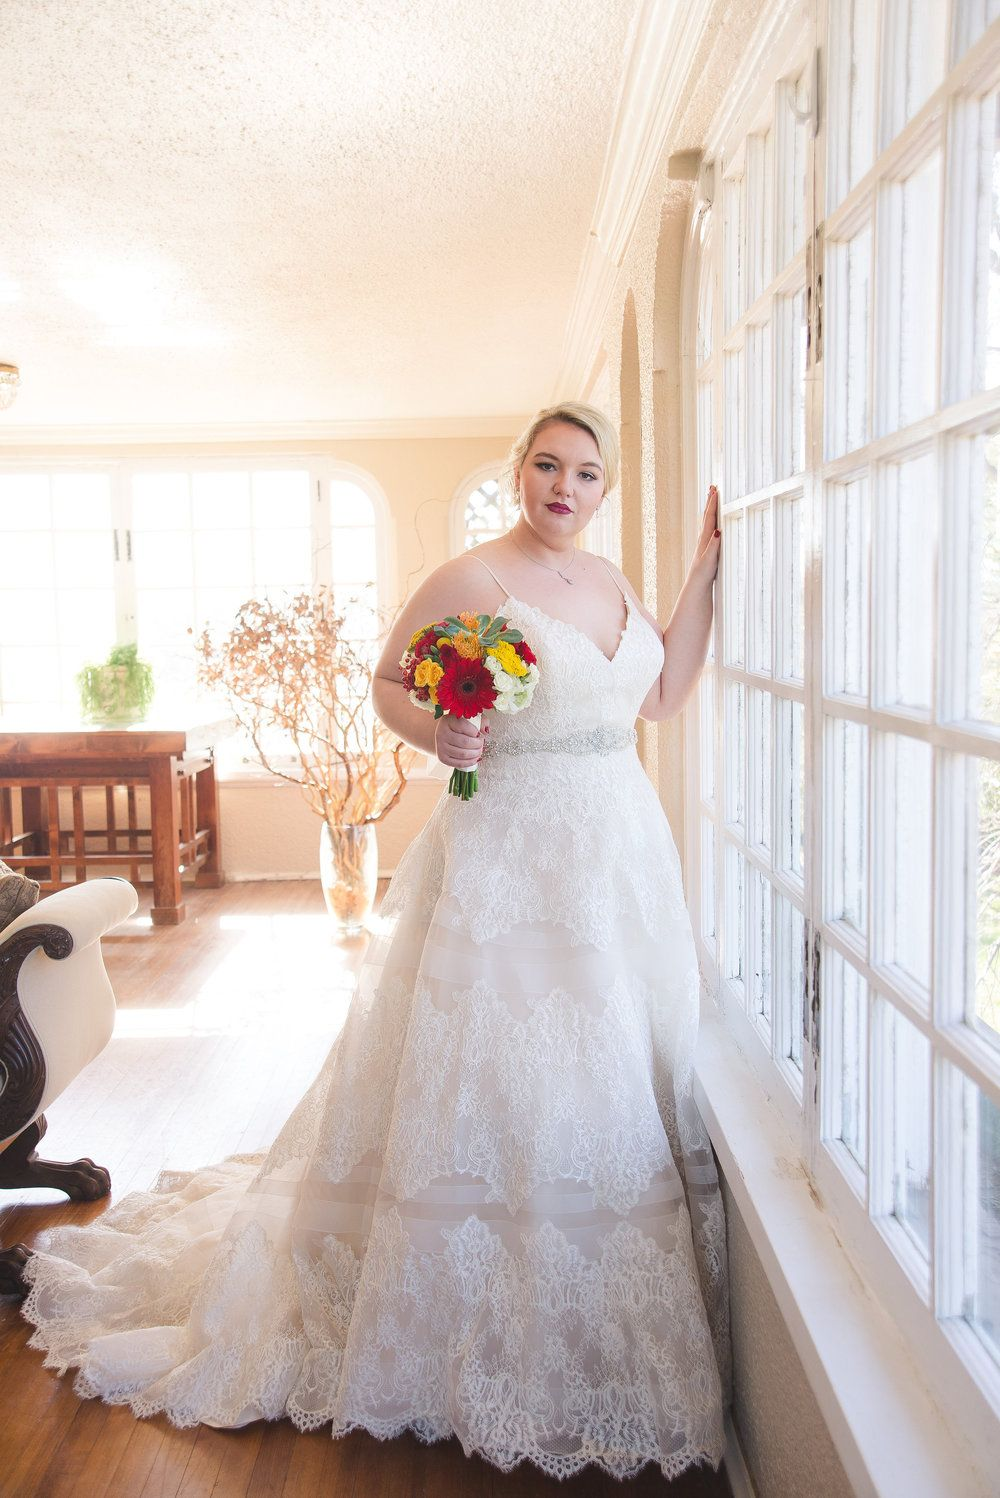 Wedding dresses for plus size brides  All My Heart Bridal  Plus Size Wedding Dress  Kansas City